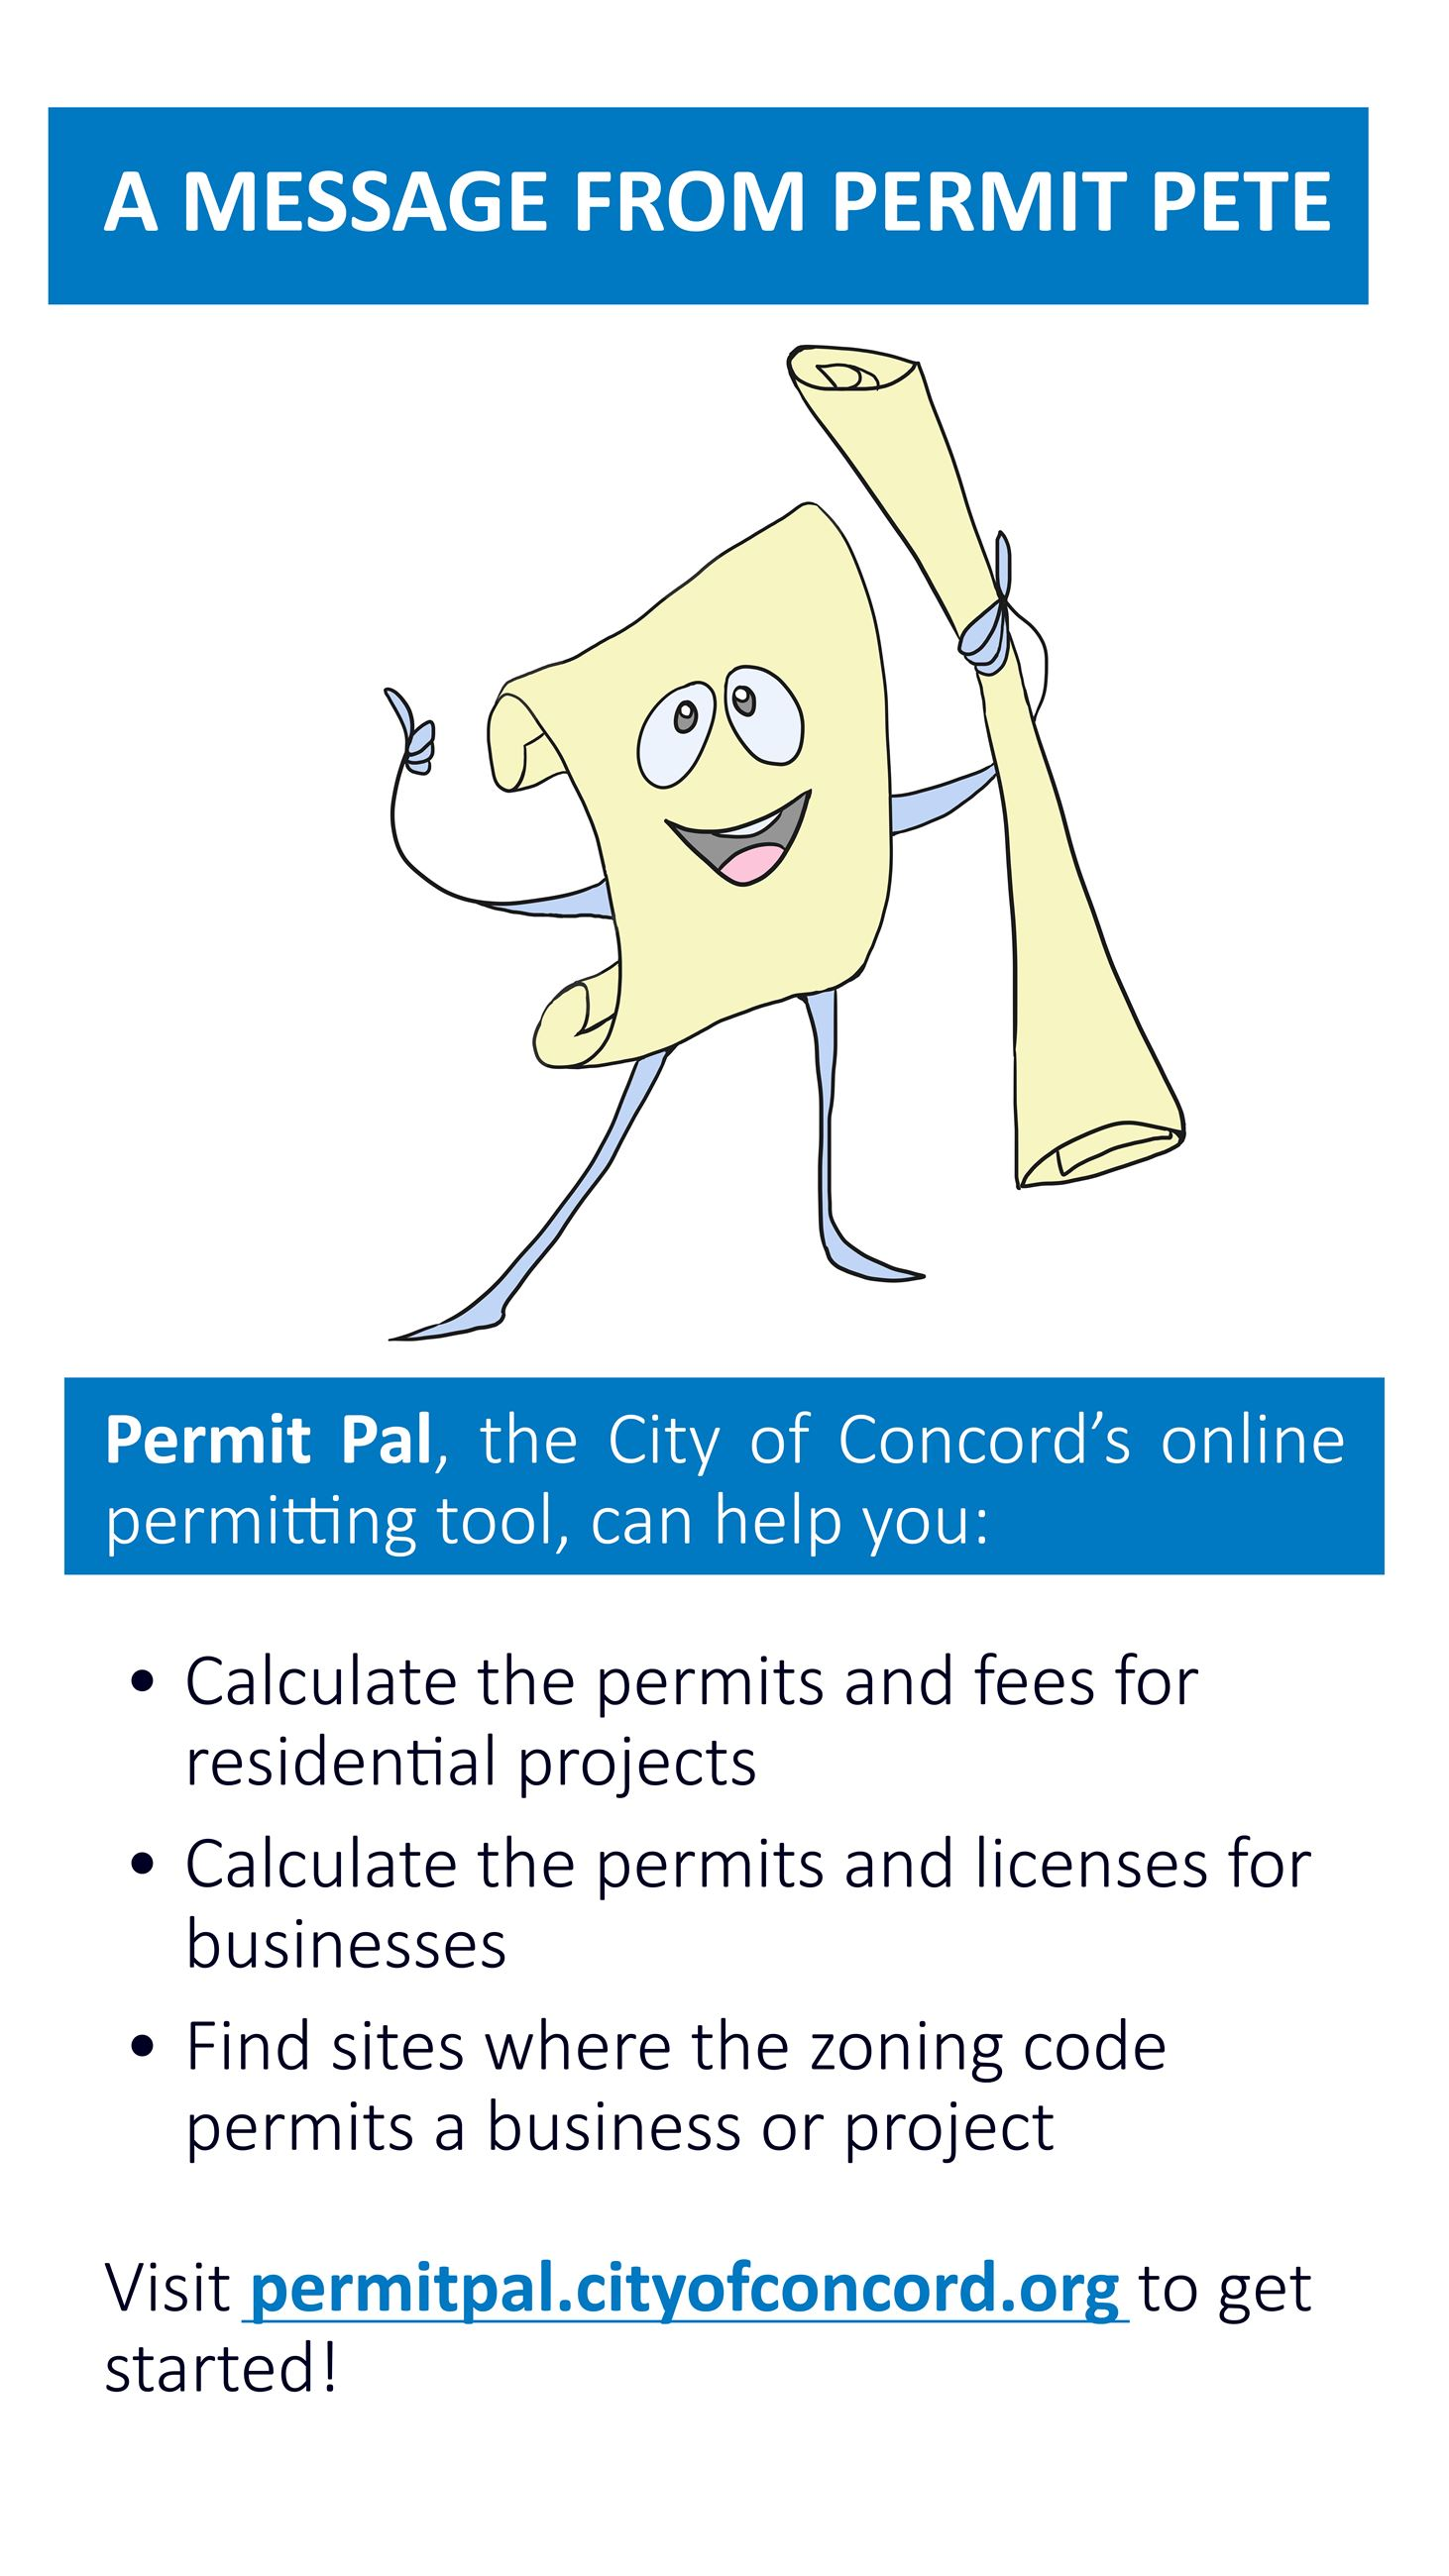 Permit Pal icon and information Opens in new window